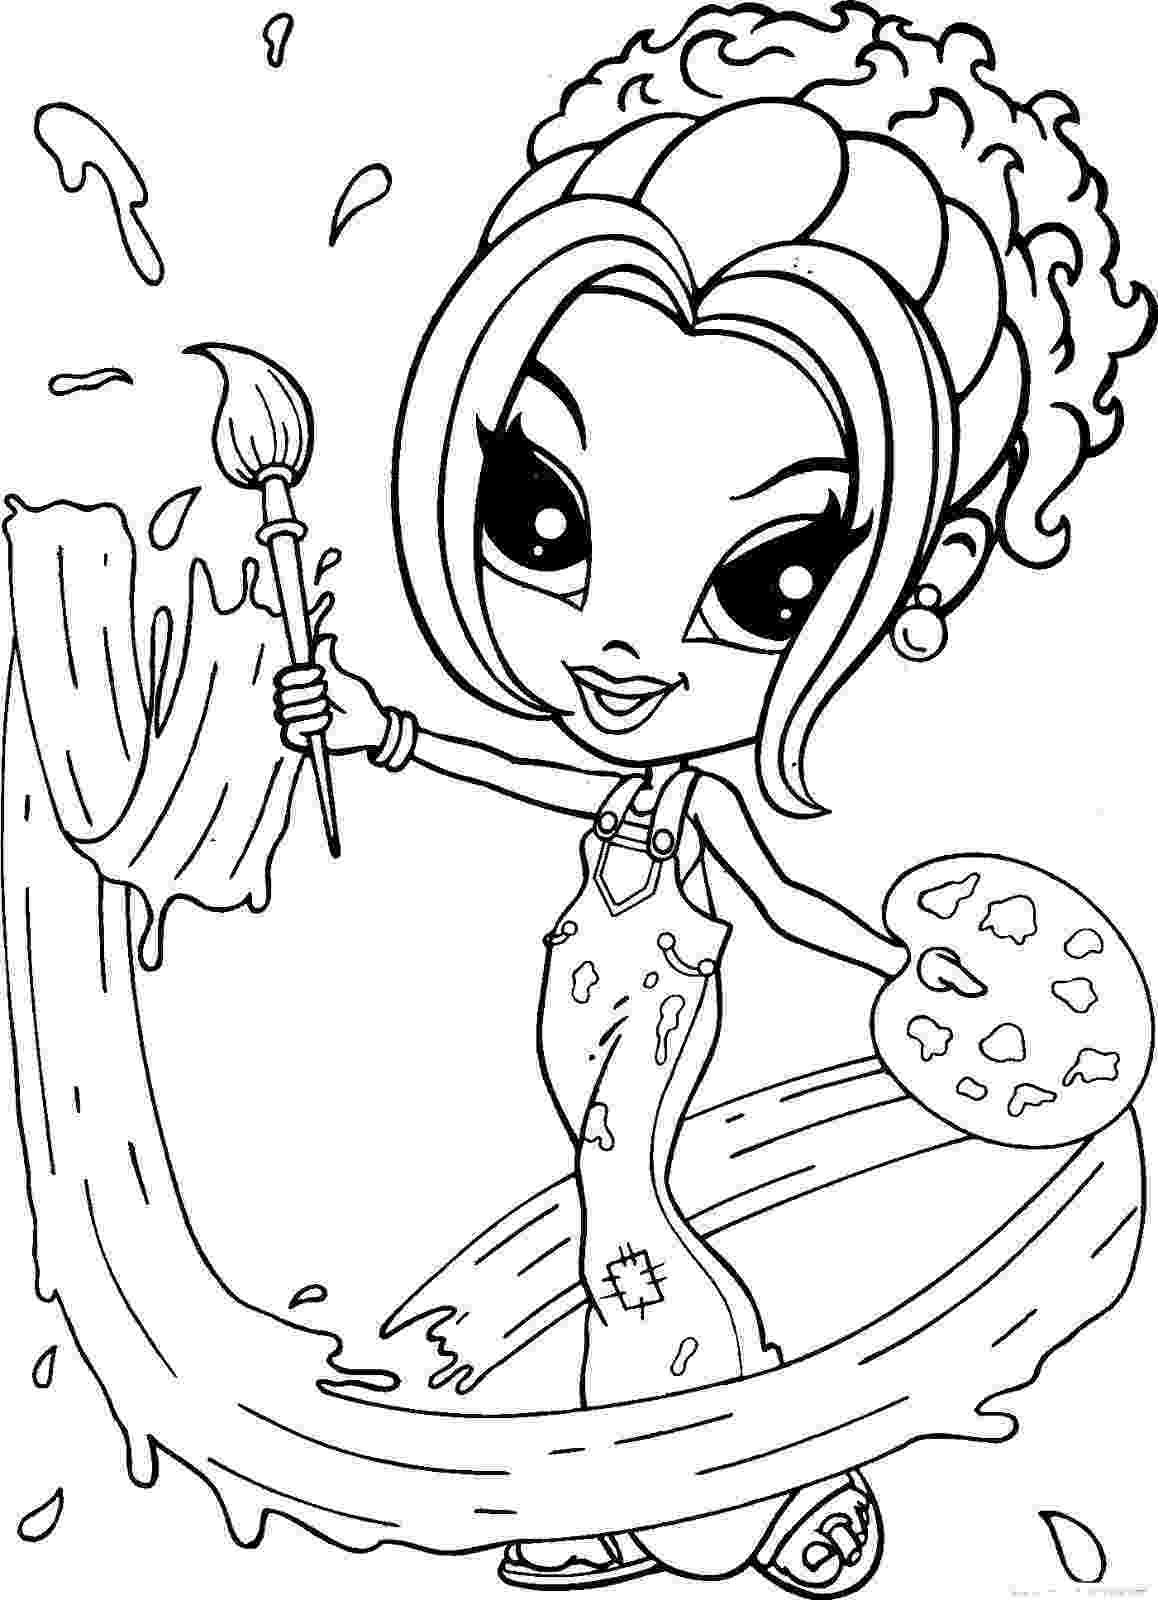 animal coloring pages to print animals coloring pages getcoloringpagescom animal to pages print coloring